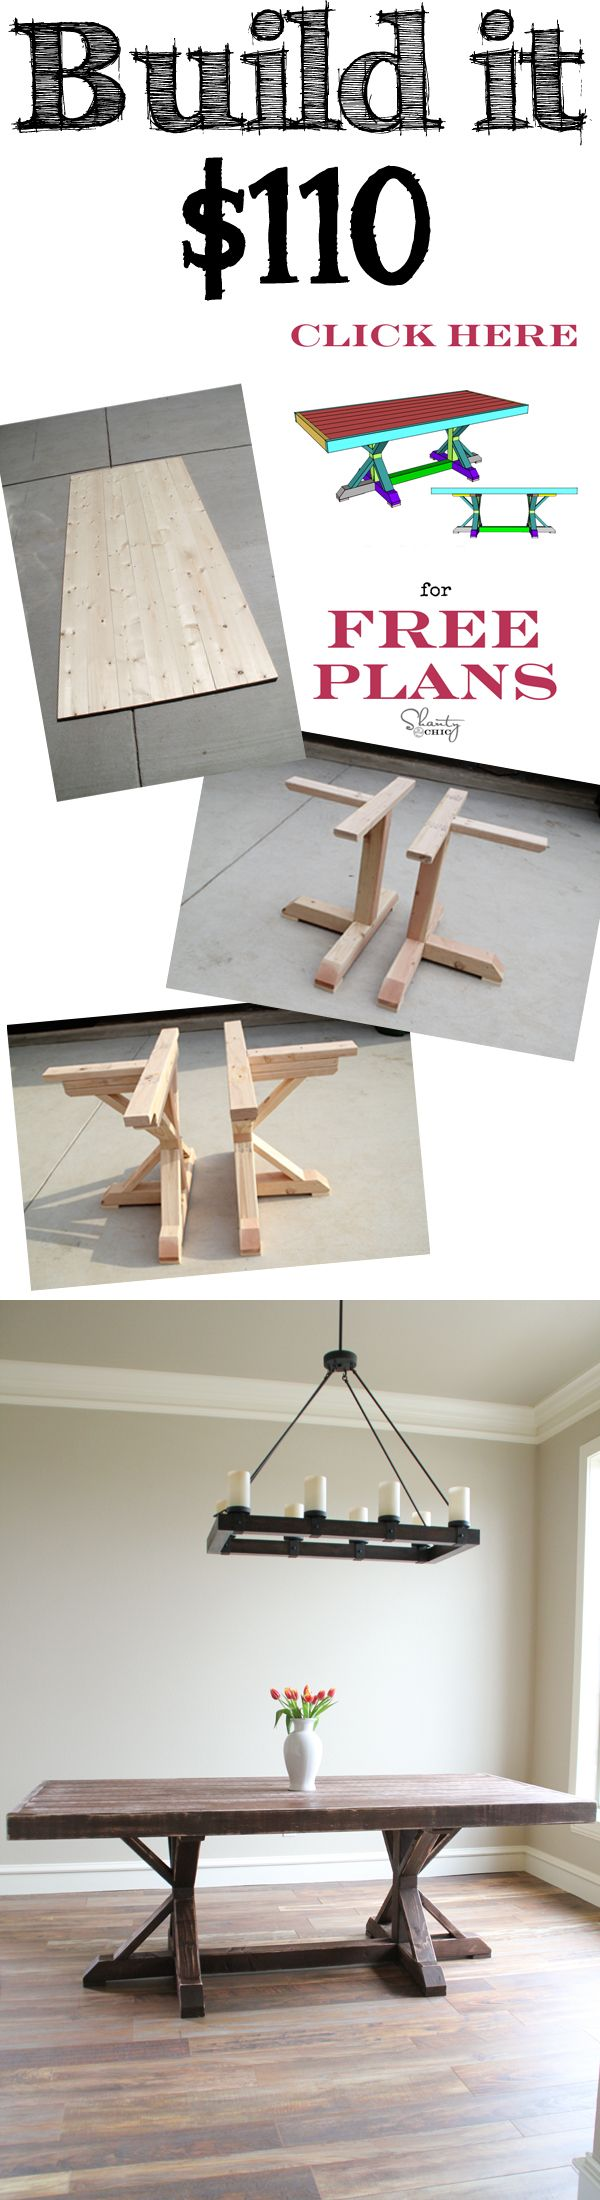 Build This Restoration Hardware Inspired Dining Table For Only 110 Im Sure Could Be Made WAY Less But Its A Neat Idea